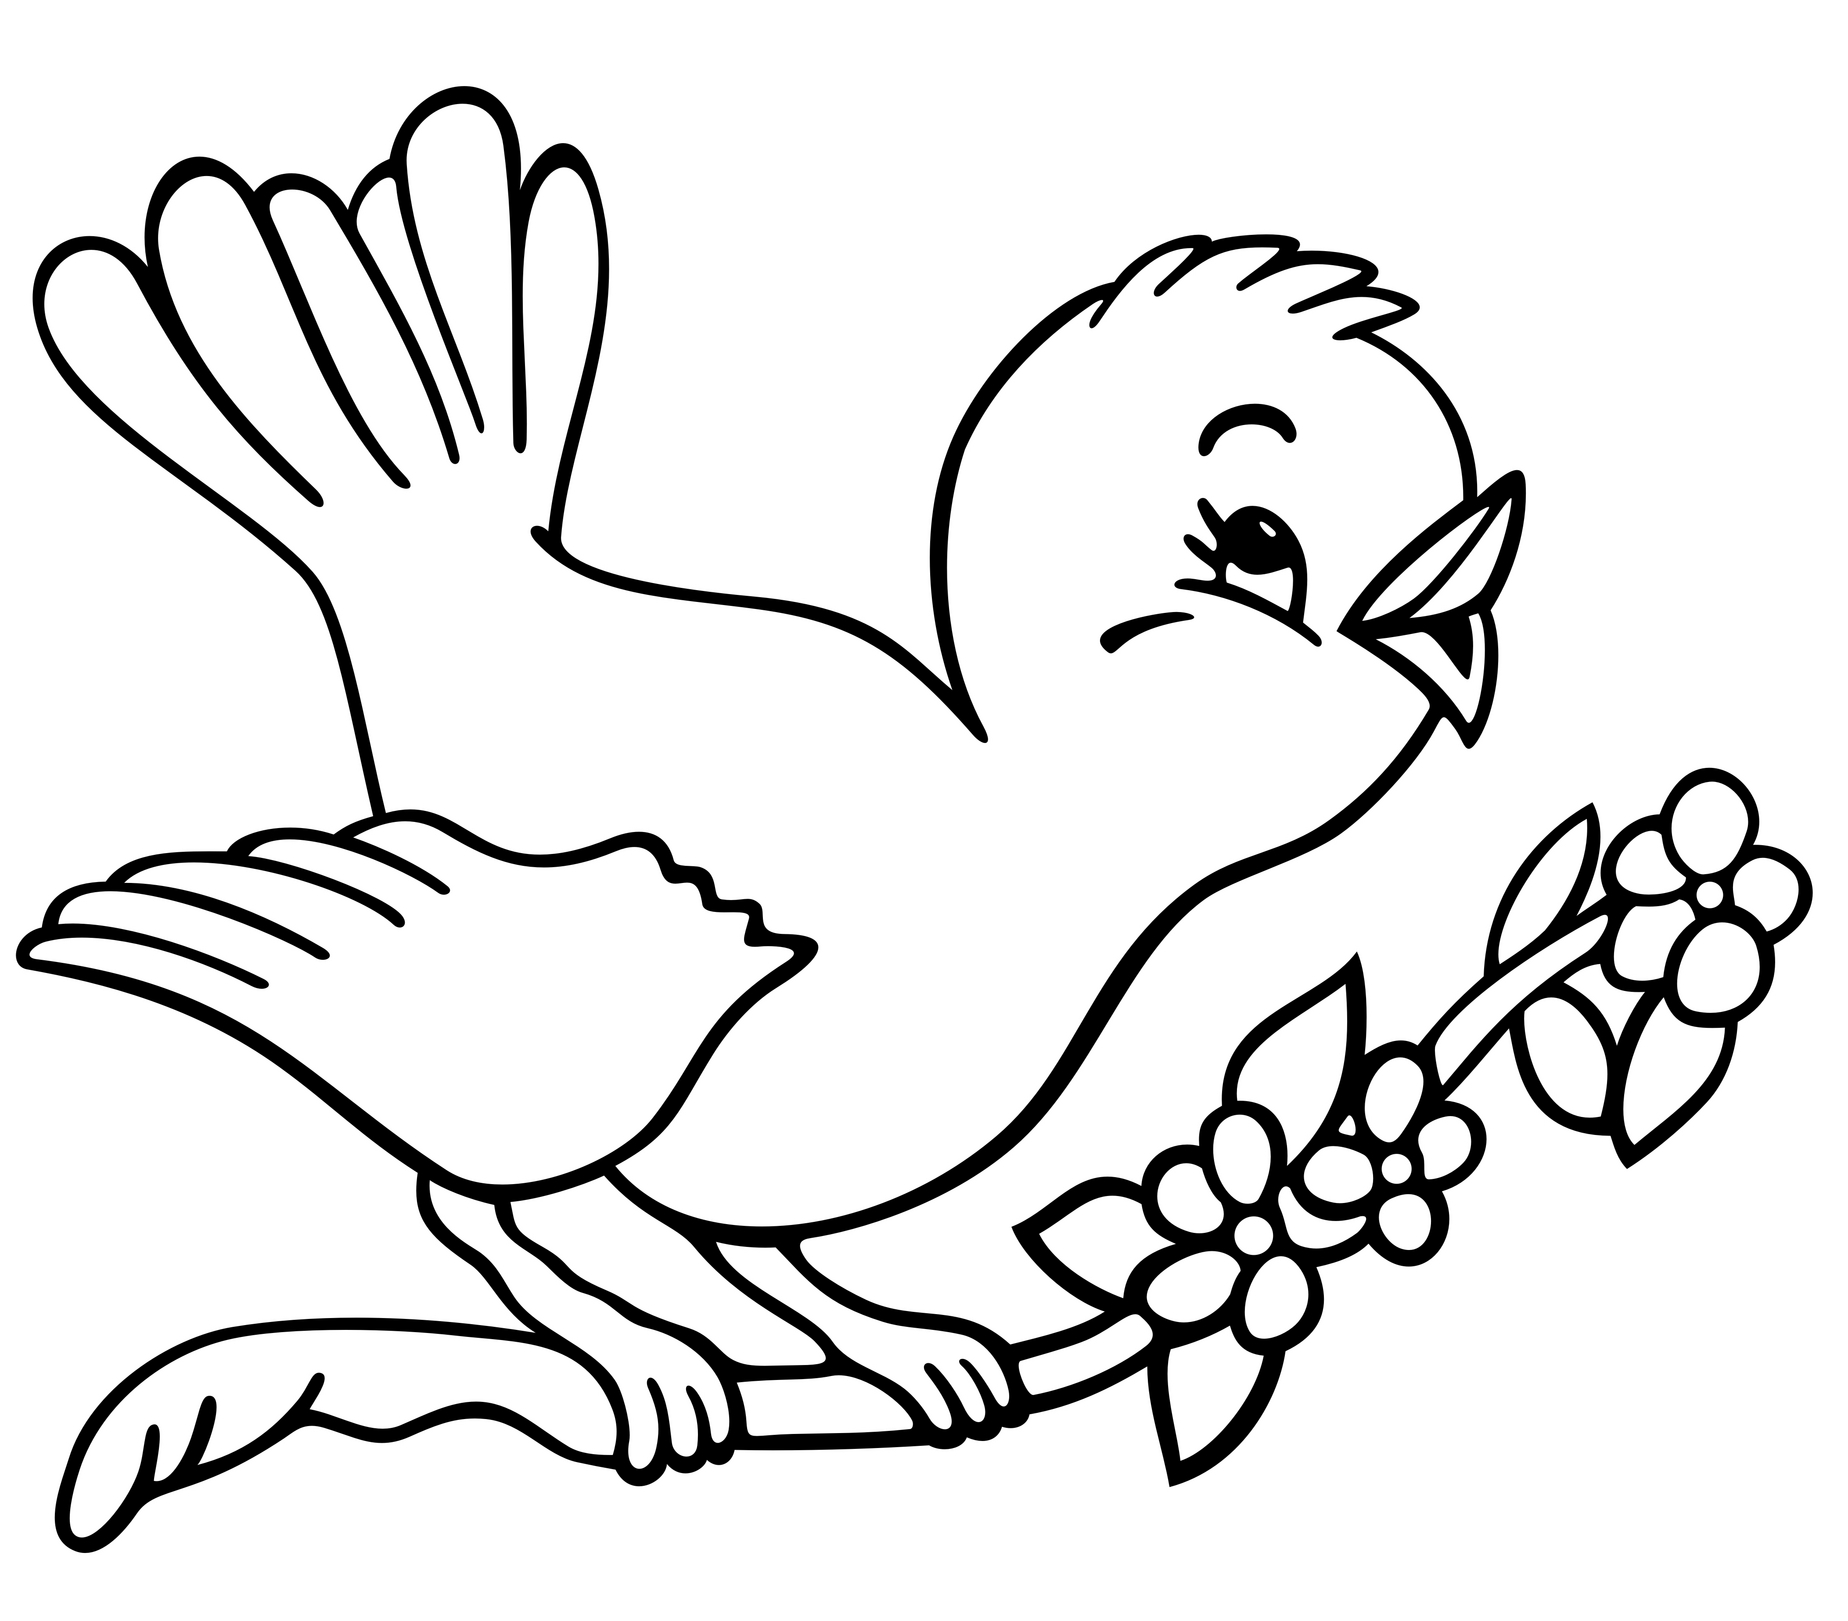 Baby Bird Coloring Pages Printable | Bird coloring pages, Coloring ... | 1621x1848